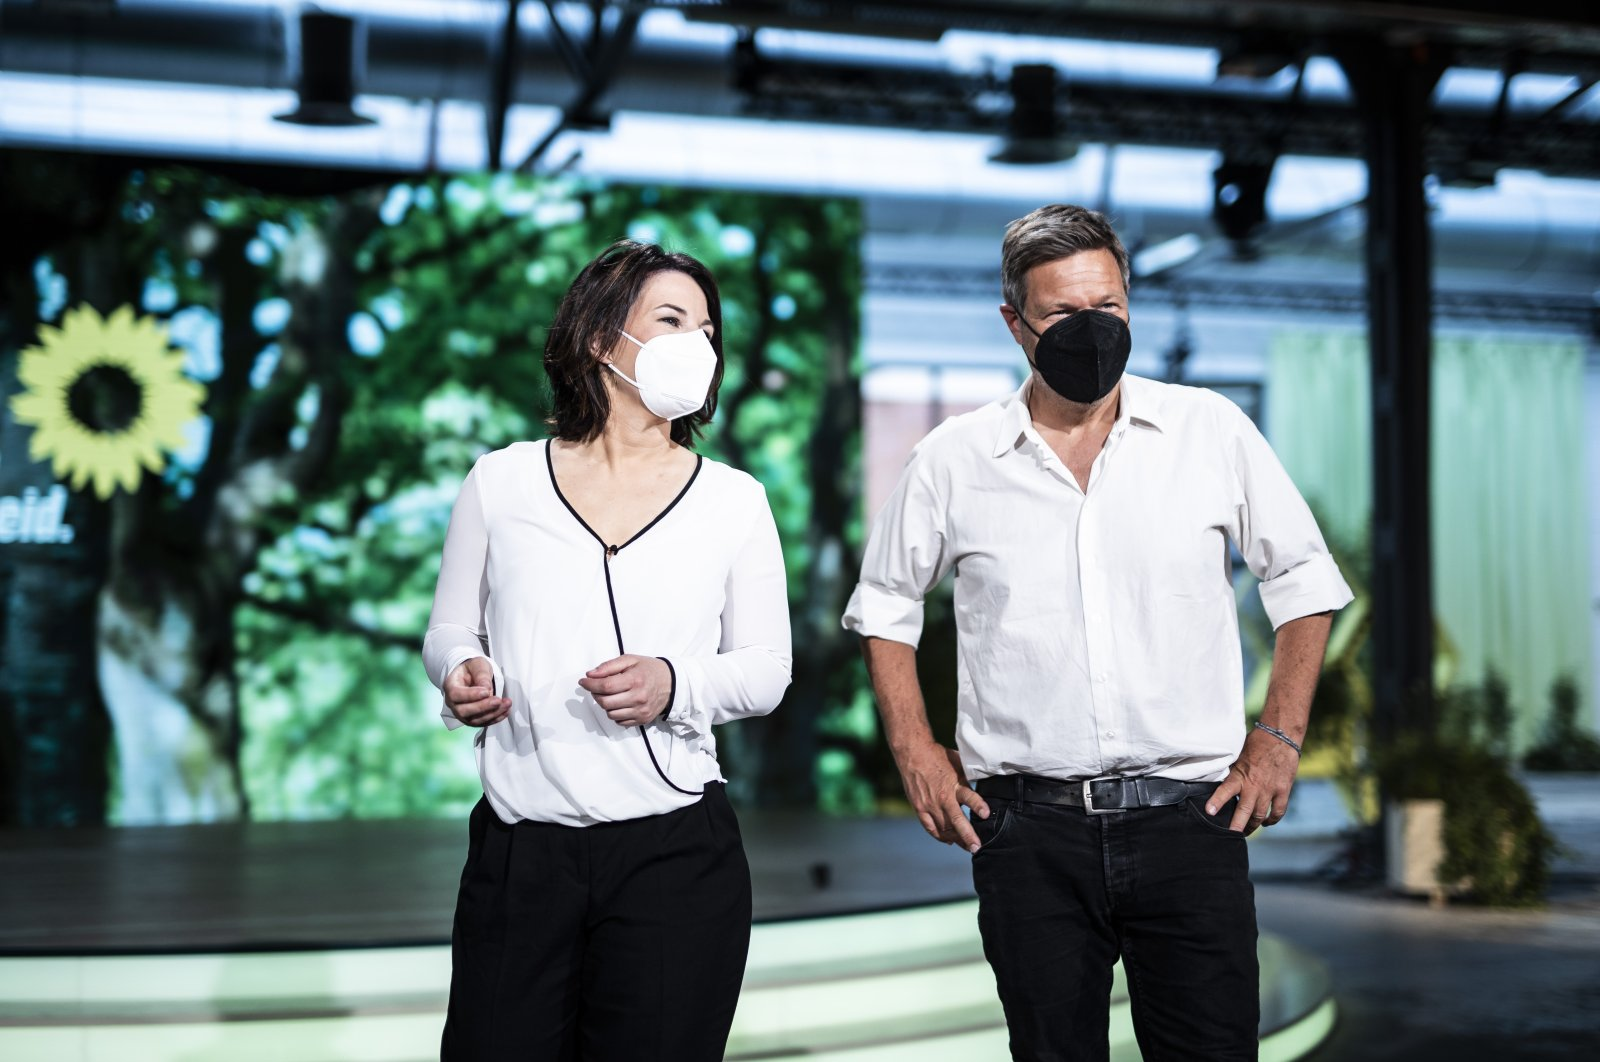 Annalena Baerbock (L), co-leader of the German Greens party, and chancellor candidate, and Robert Habeck, co-leader of the German Greens party, are pictured at the congress hall one day before the Greens party congress is set to start, Berlin, Germany, June 10, 2021. (Photo by Getty Images)